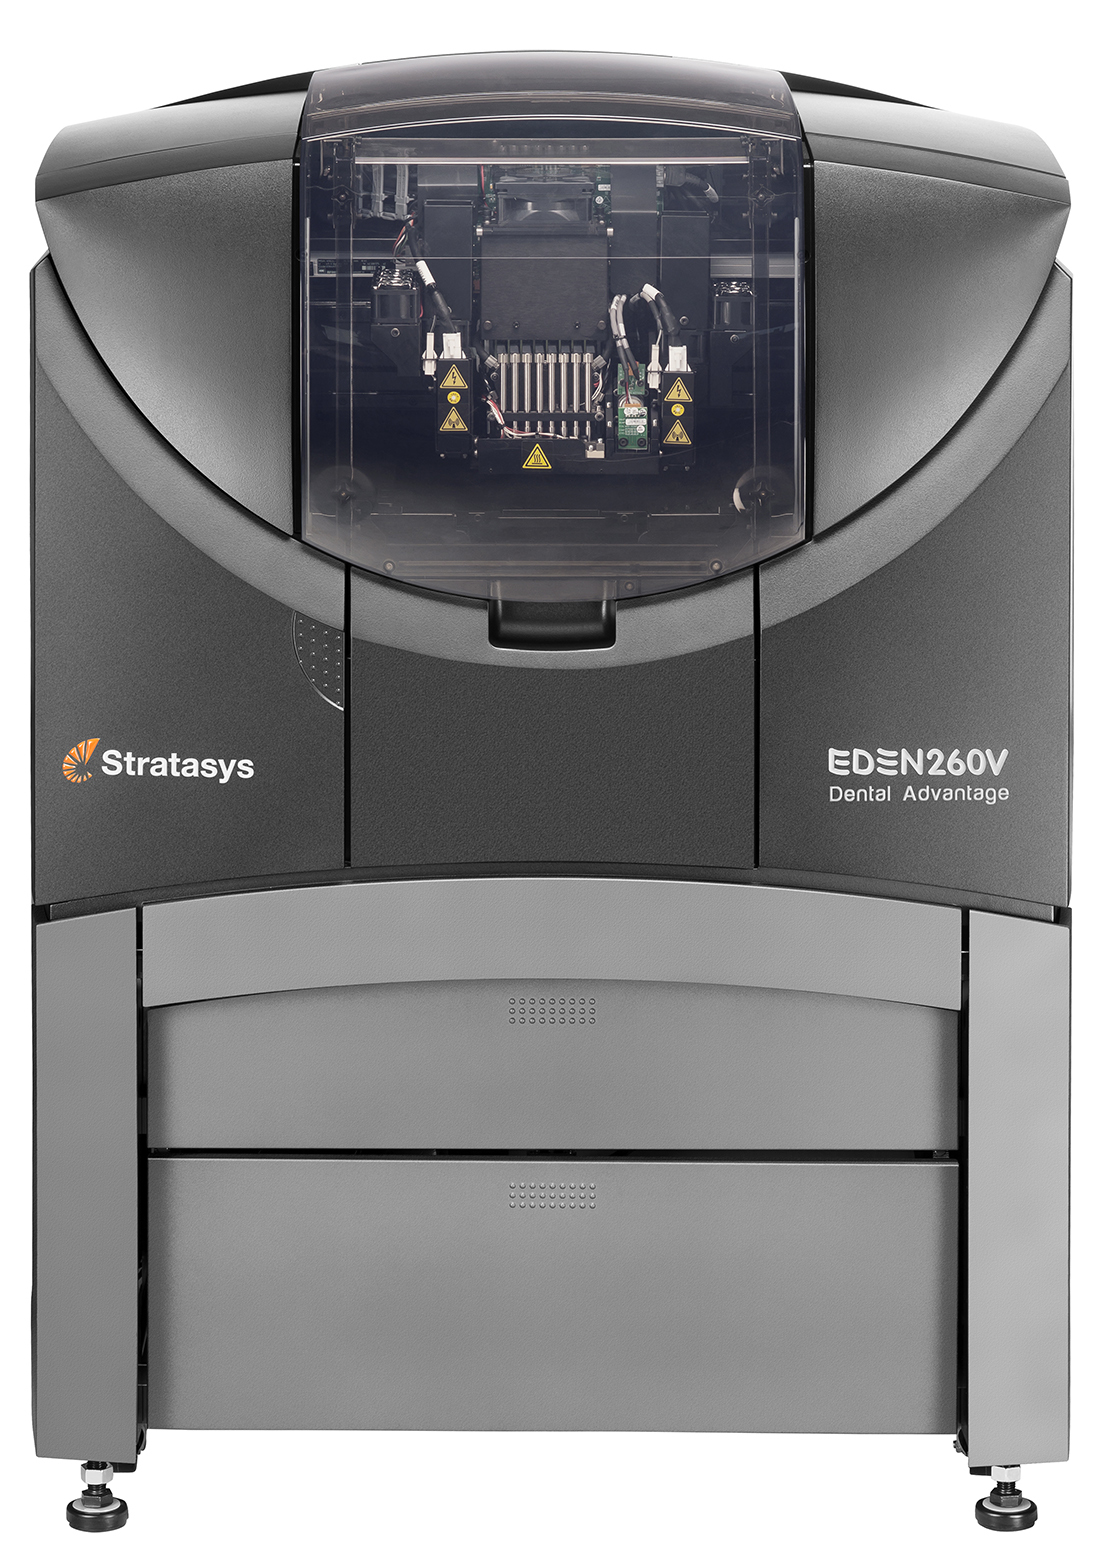 The Objet Eden260V Dental Advantage 3D Printer offers dental and orthodontic labs affordable access to advanced digital dentistry (Photo: Stratasys)